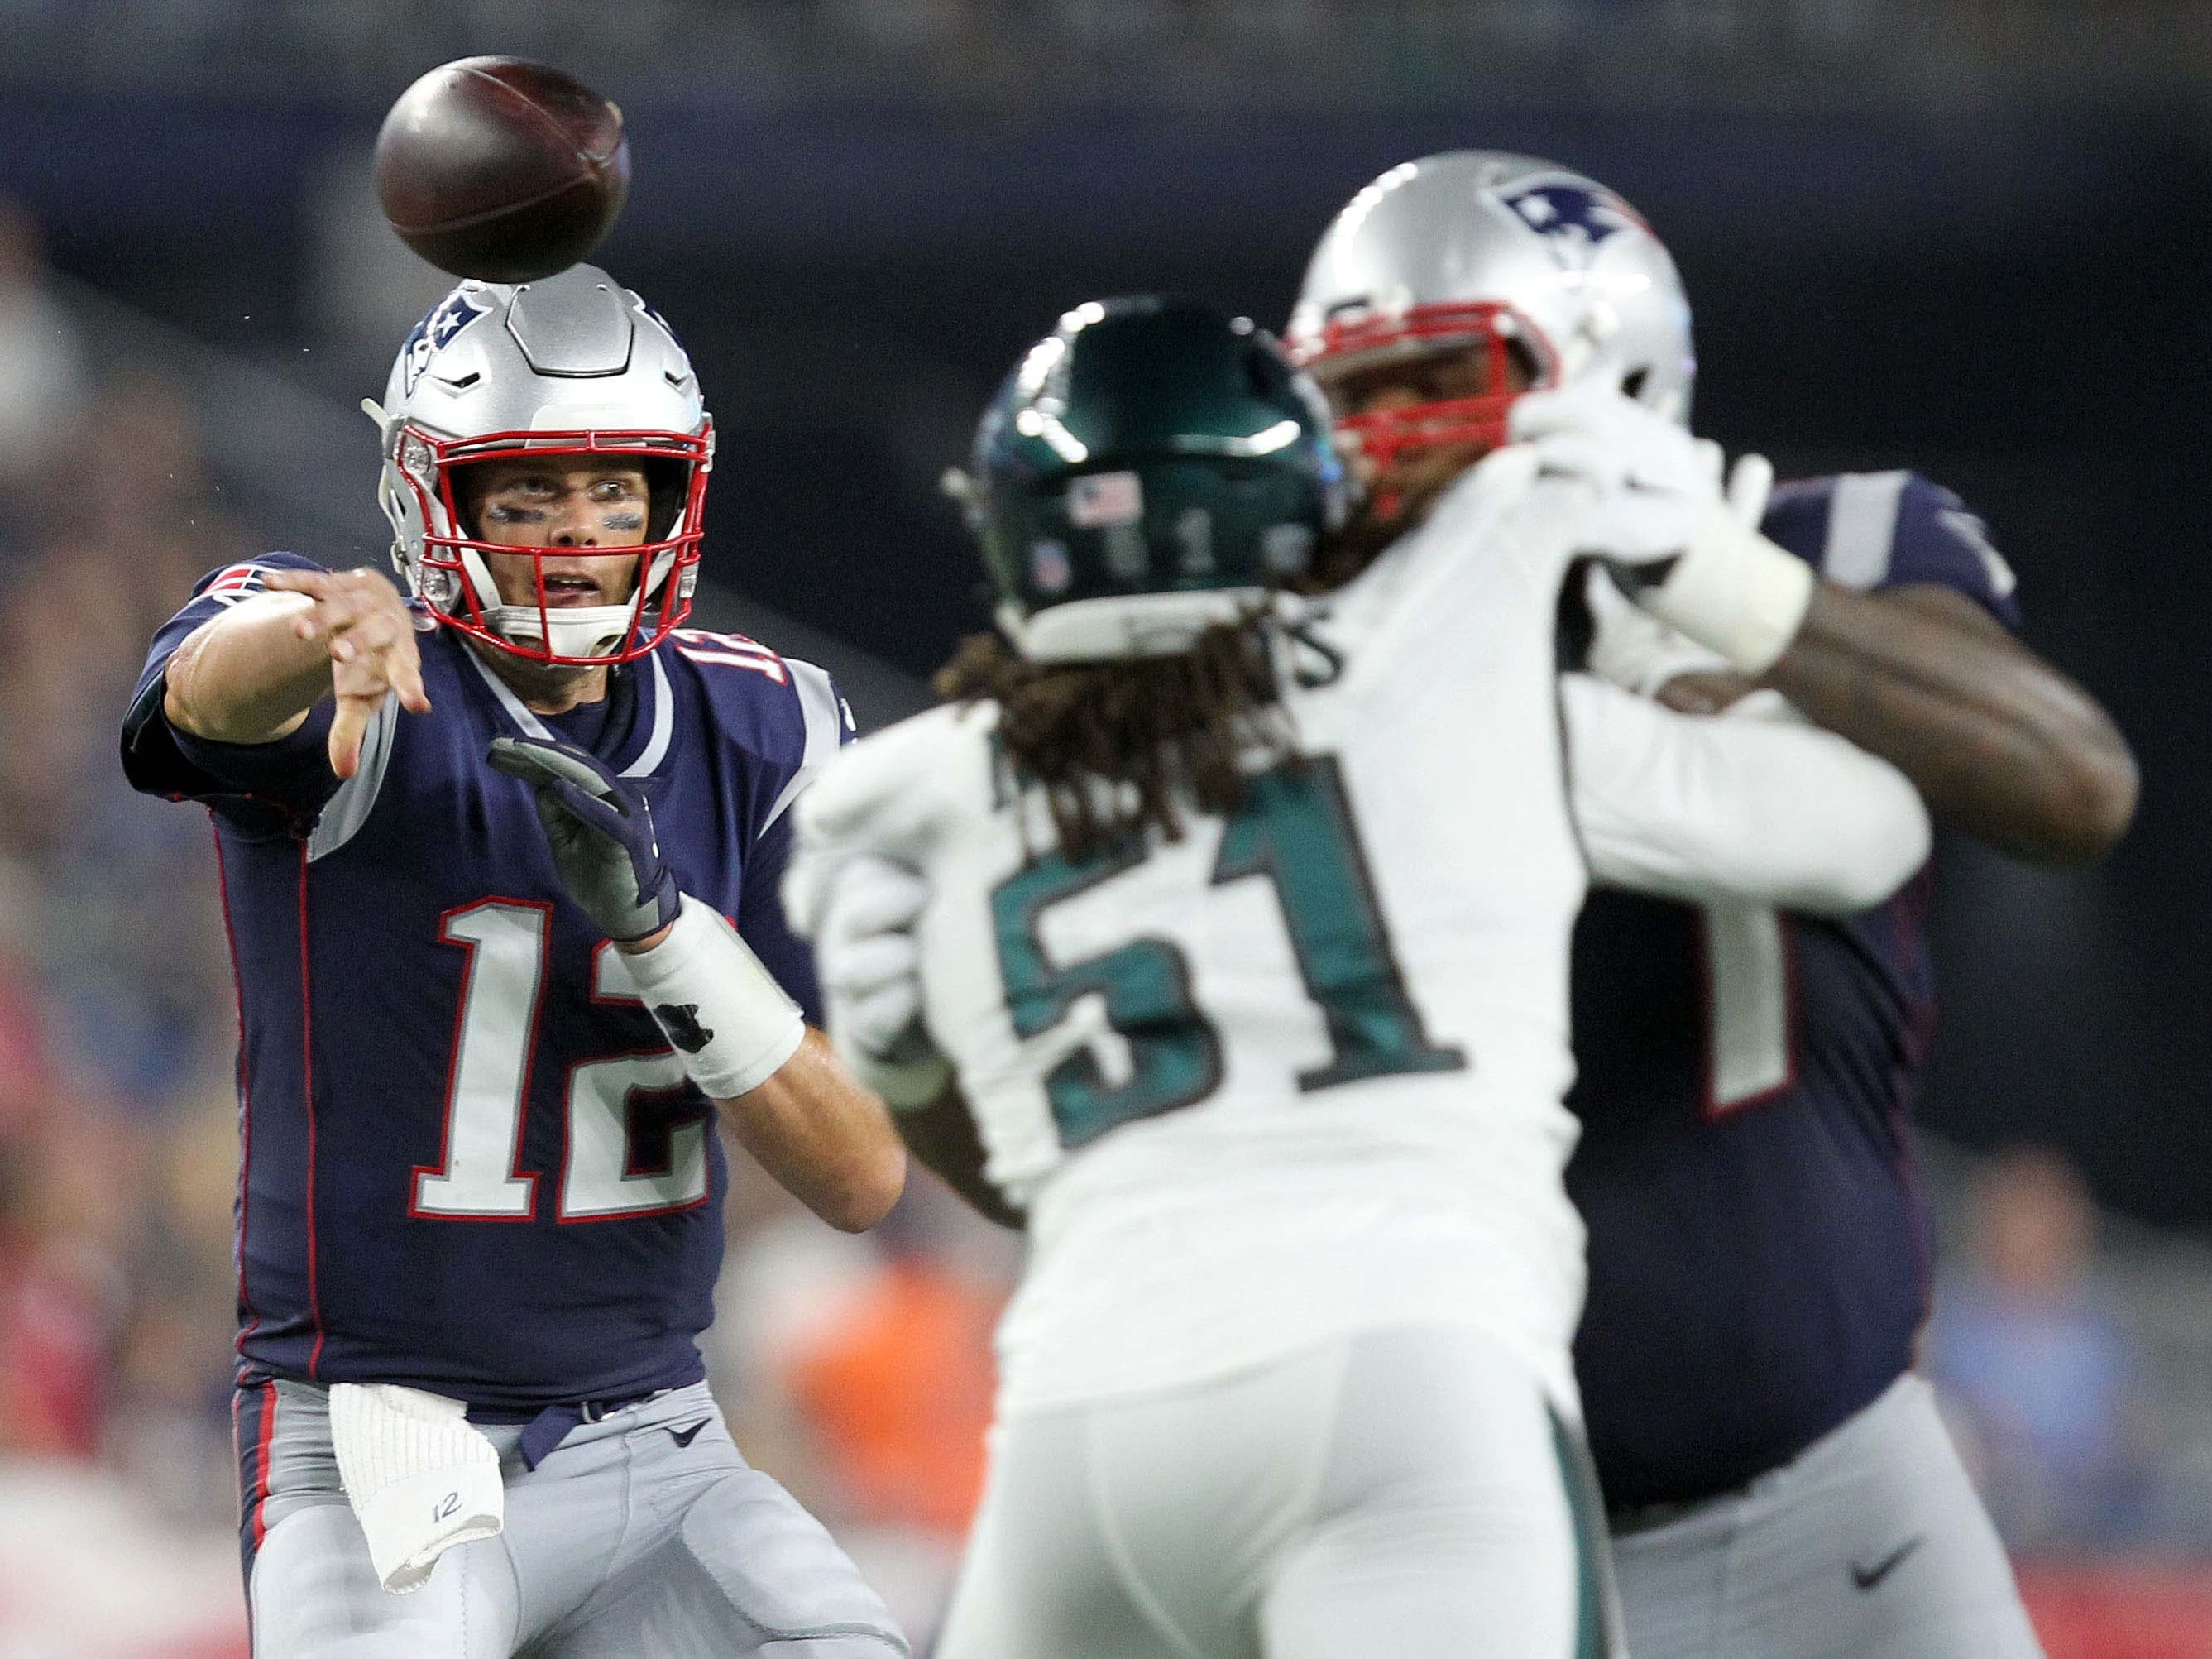 New England Patriots quarterback Tom Brady throws a touchdown pass to running back James White during the second quarter against the Philadelphia Eagles at Gillette Stadium.